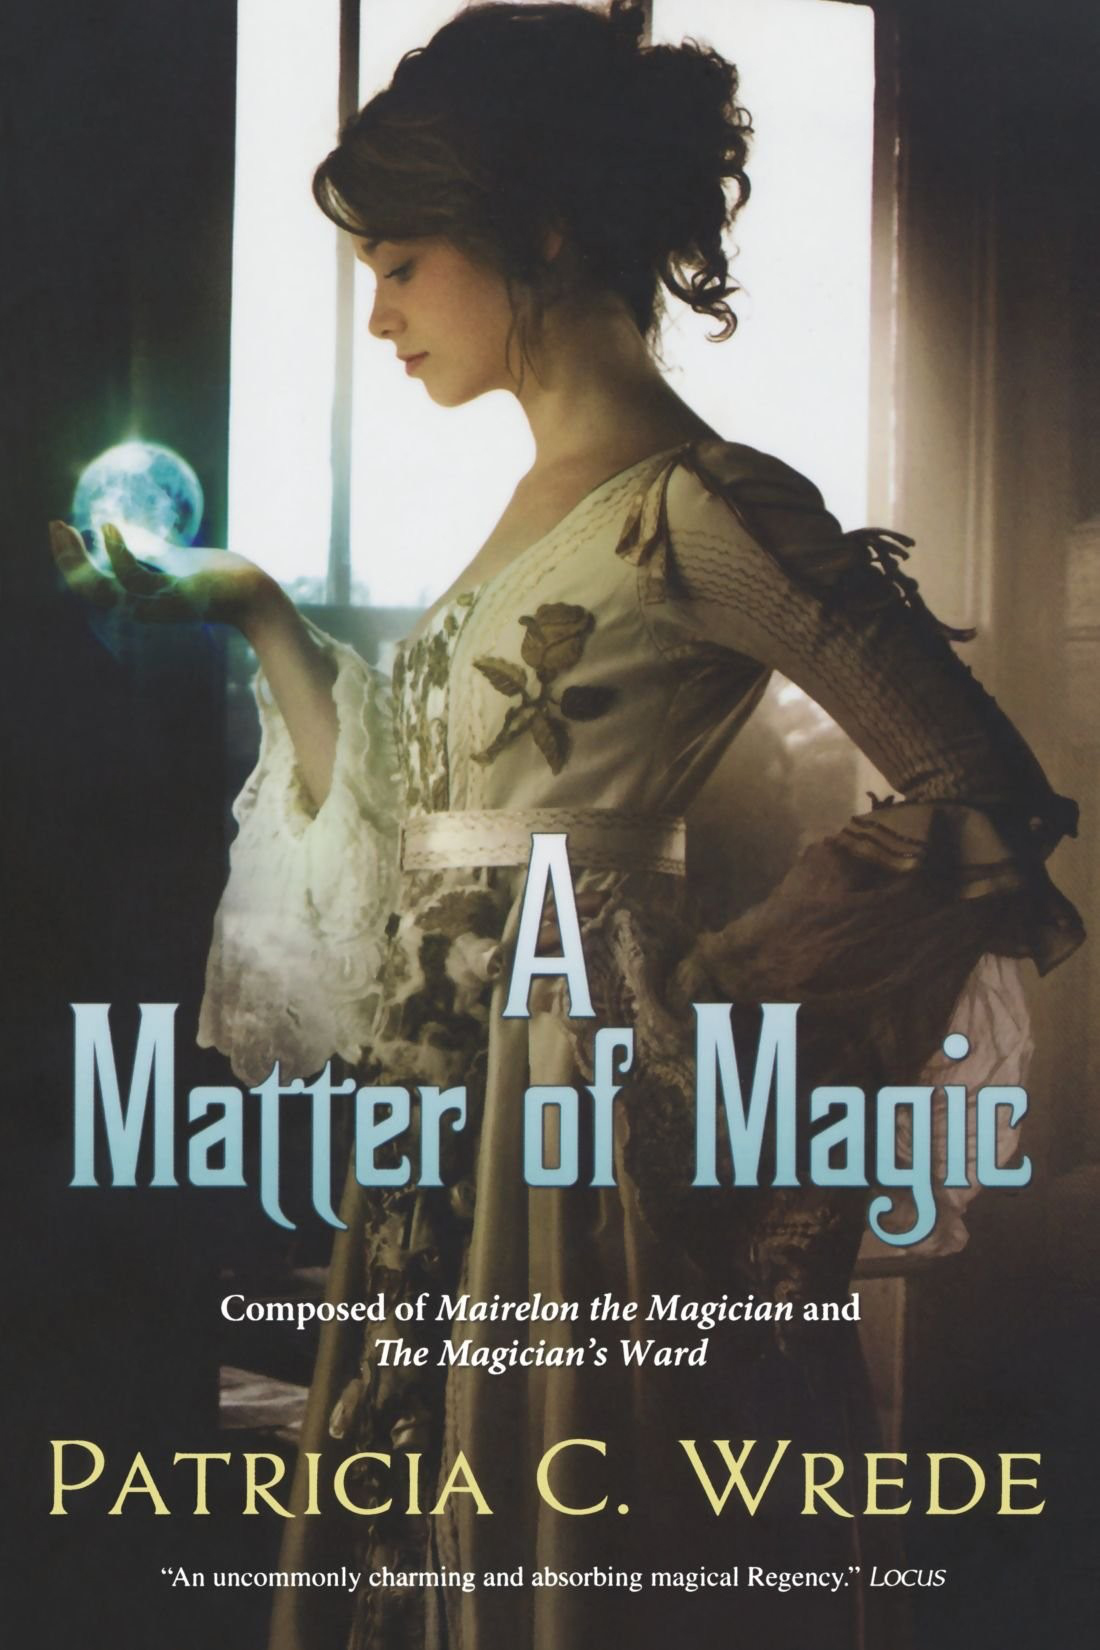 A-Matter-of-Magic